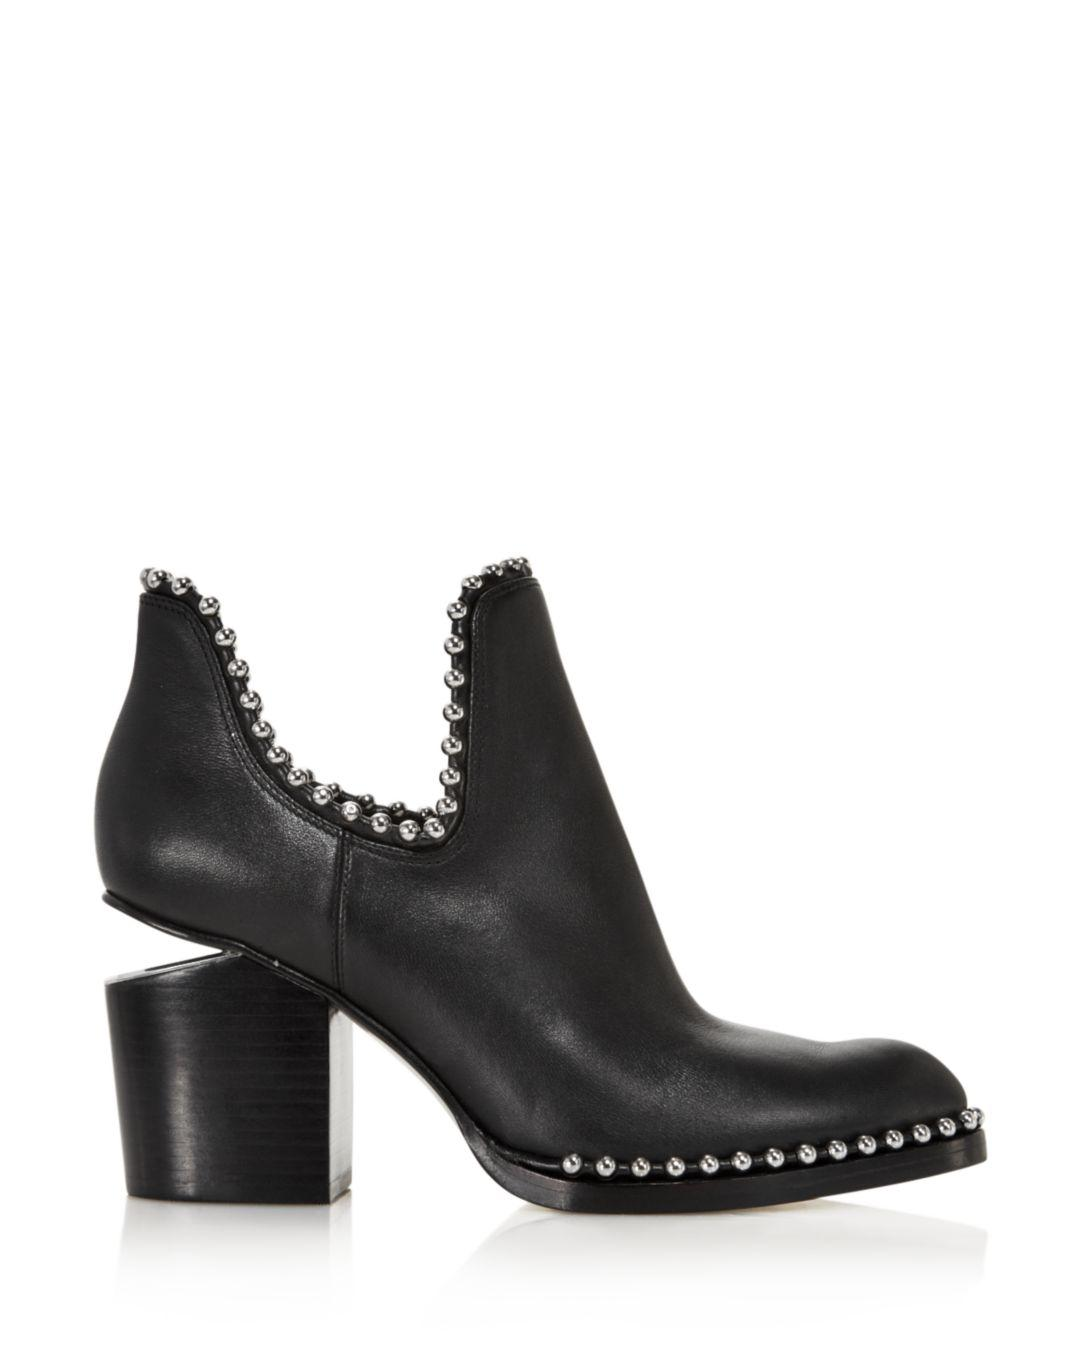 324b5f8e4807c Lyst - Alexander Wang Women s Gabi Pointed Toe Studded Leather High-heel Ankle  Boots in Black